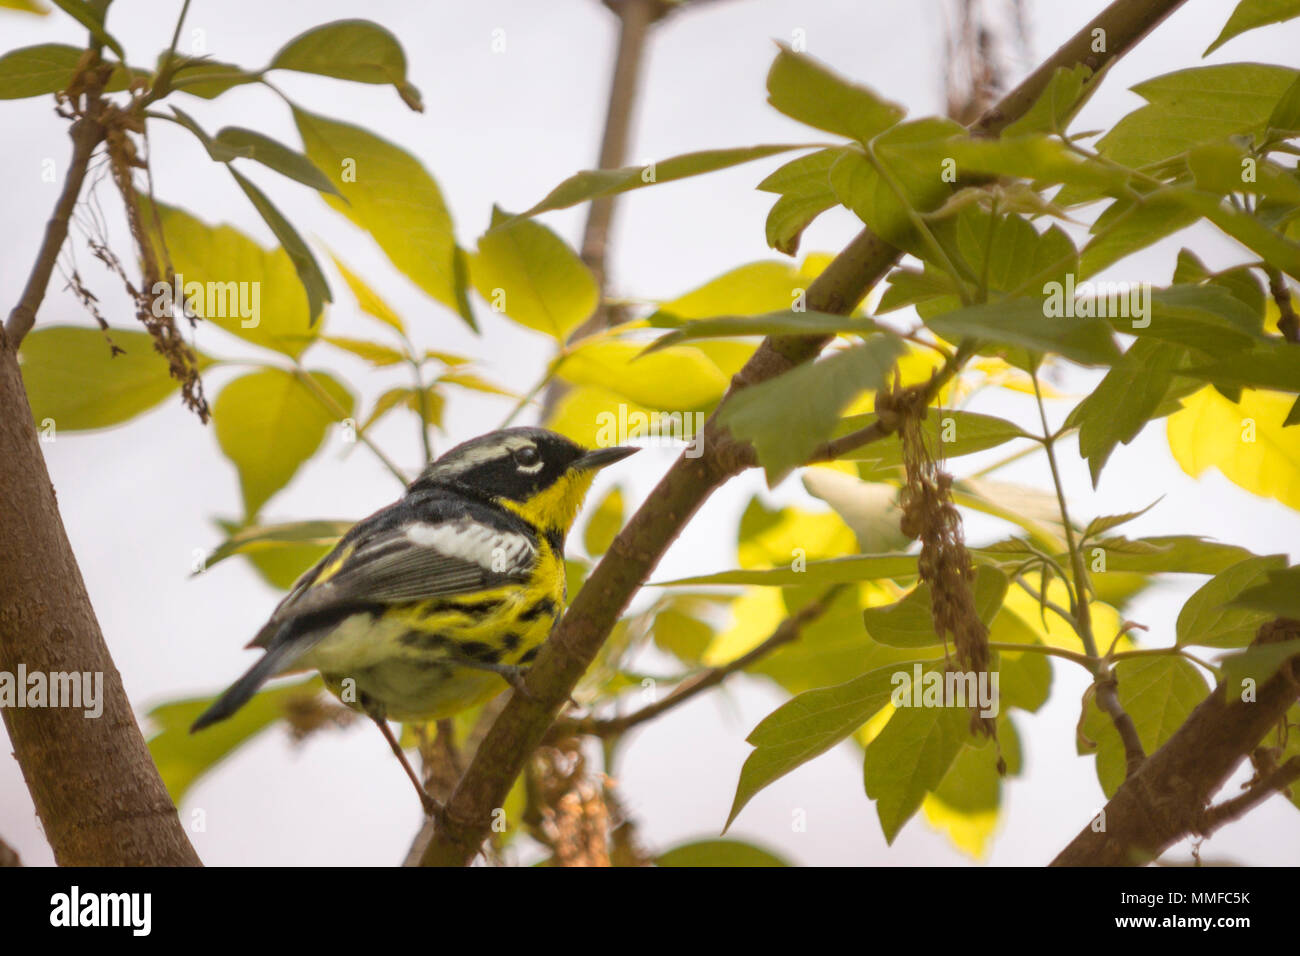 A colorful male Magnolia Warbler bird seen at Magee Marsh in Northwest Ohio during spring. Stock Photo